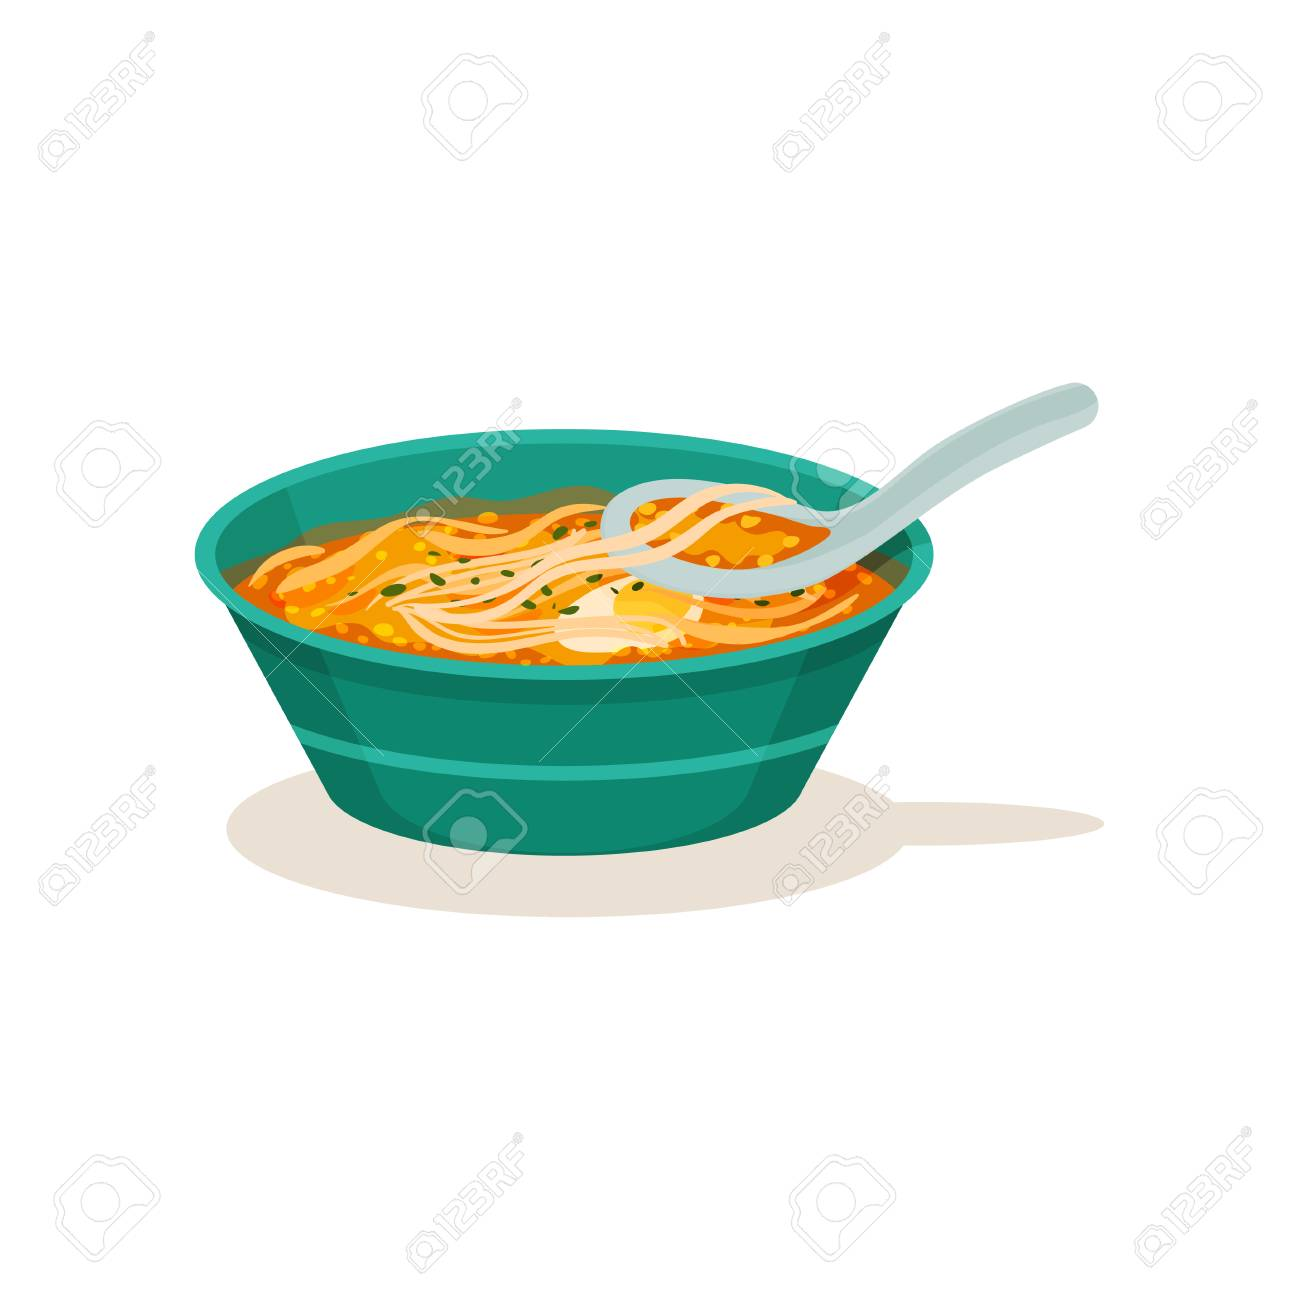 Bowl Of Laksa Soup Or Curry Mee With Noodle And Half Of Boiled Stock Photo Picture And Royalty Free Image Image 113503730